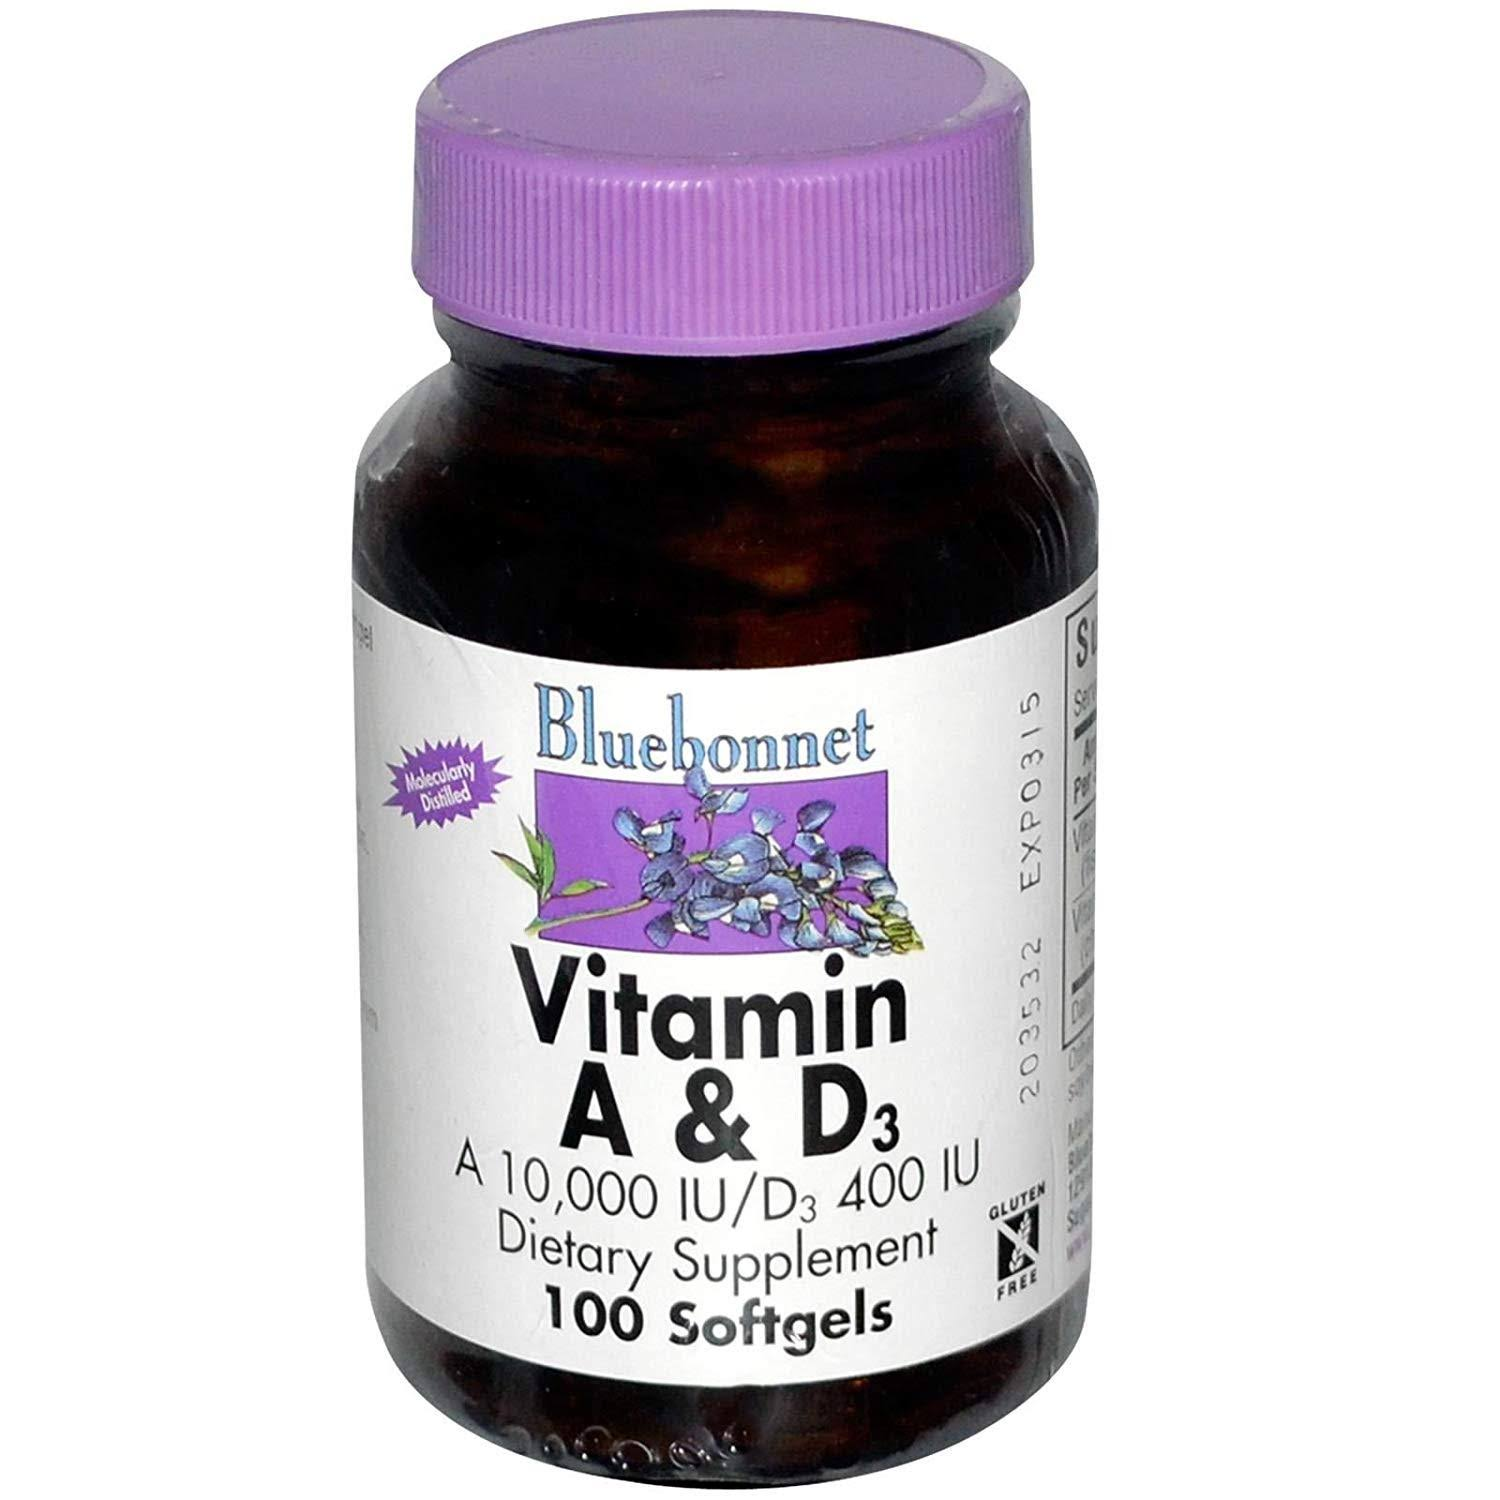 Bluebonnet Vitamin A and D3 - 100 Softgels